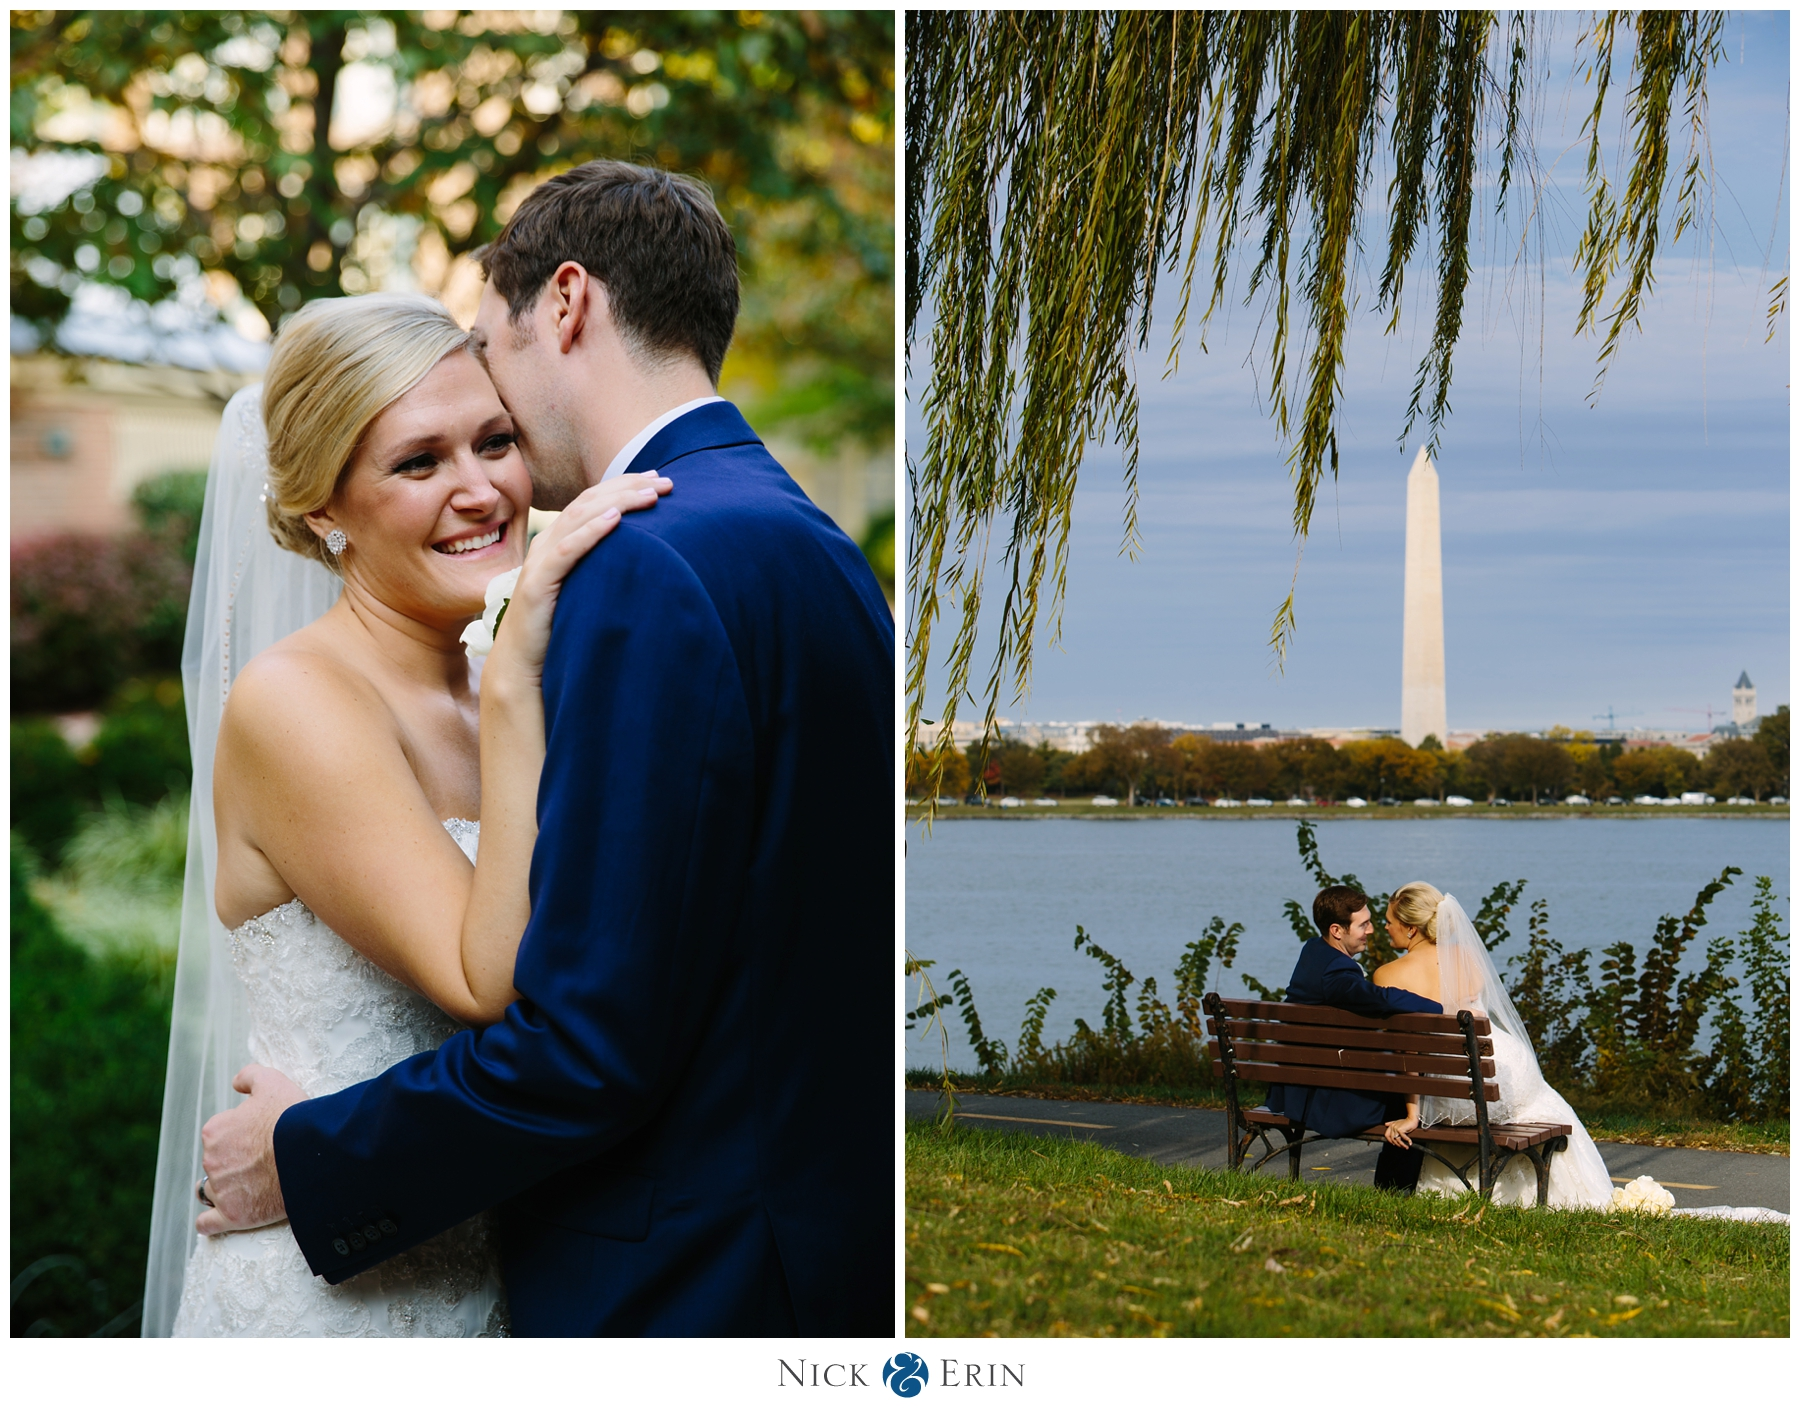 Donner_Photography_Torpedo Factory Wedding_Courtney and Scott_0011